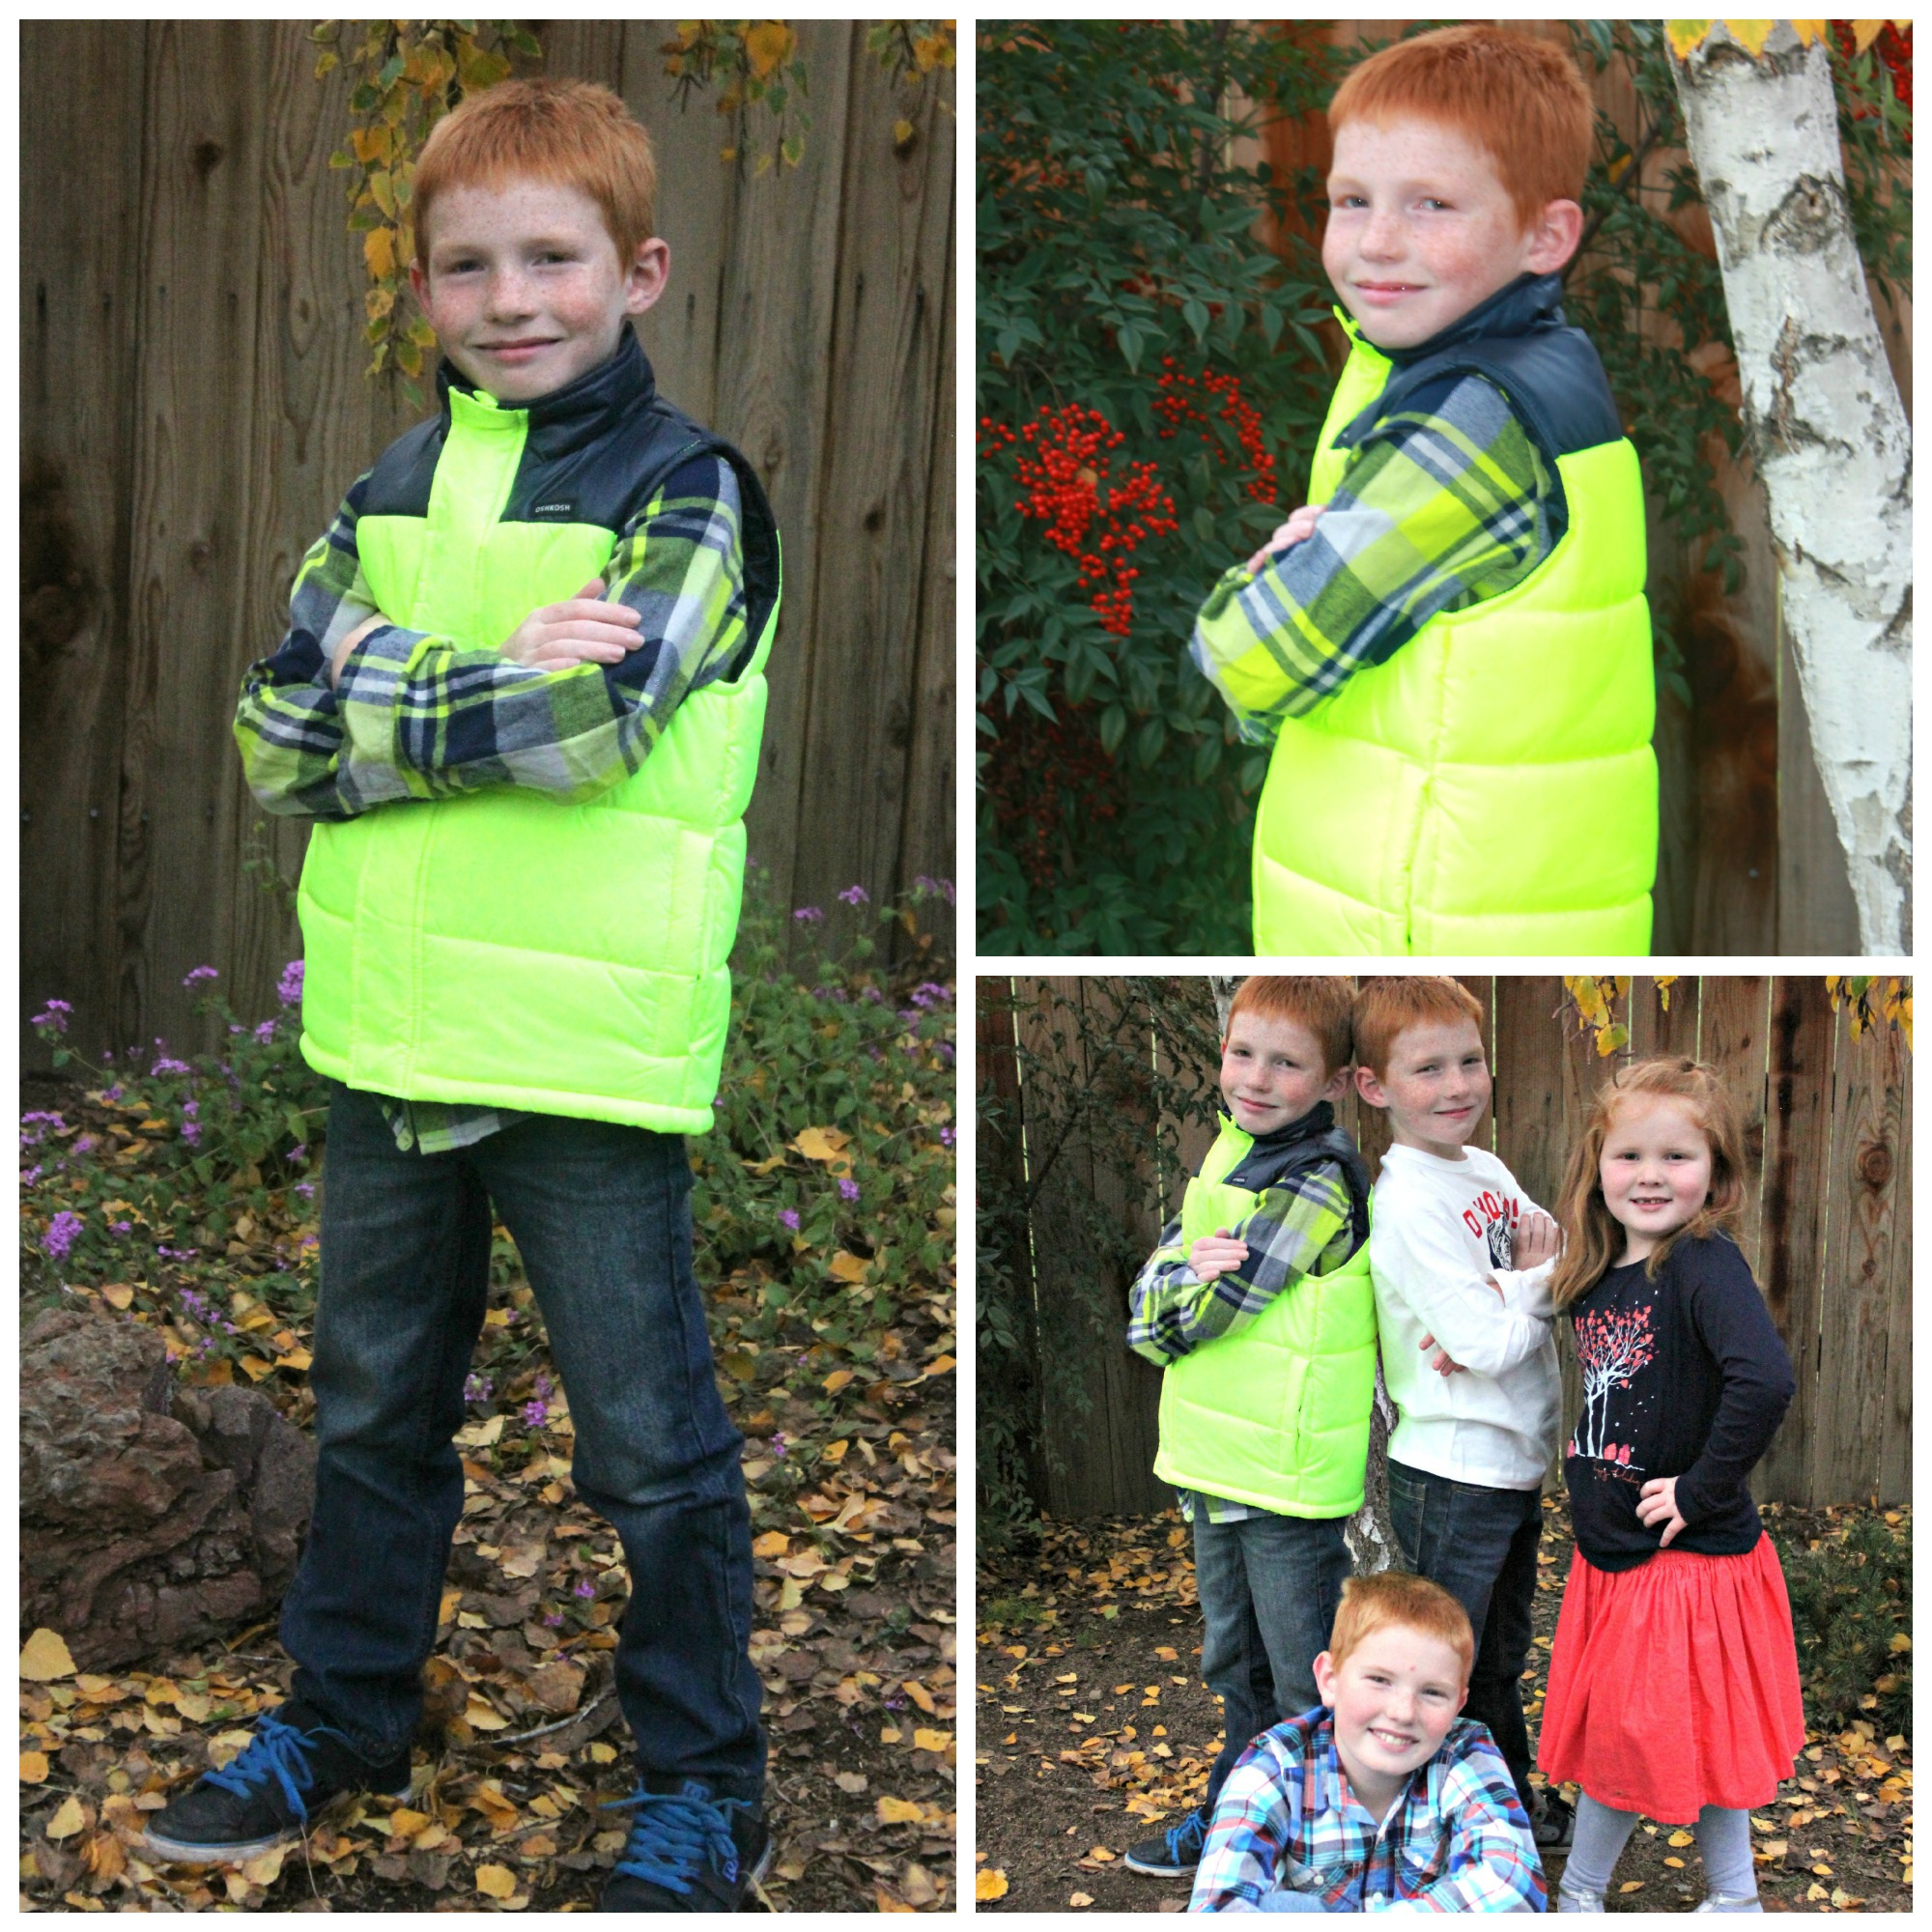 Great Winter Outfits and Coupon from OshKosh B'gosh #GiveHappy